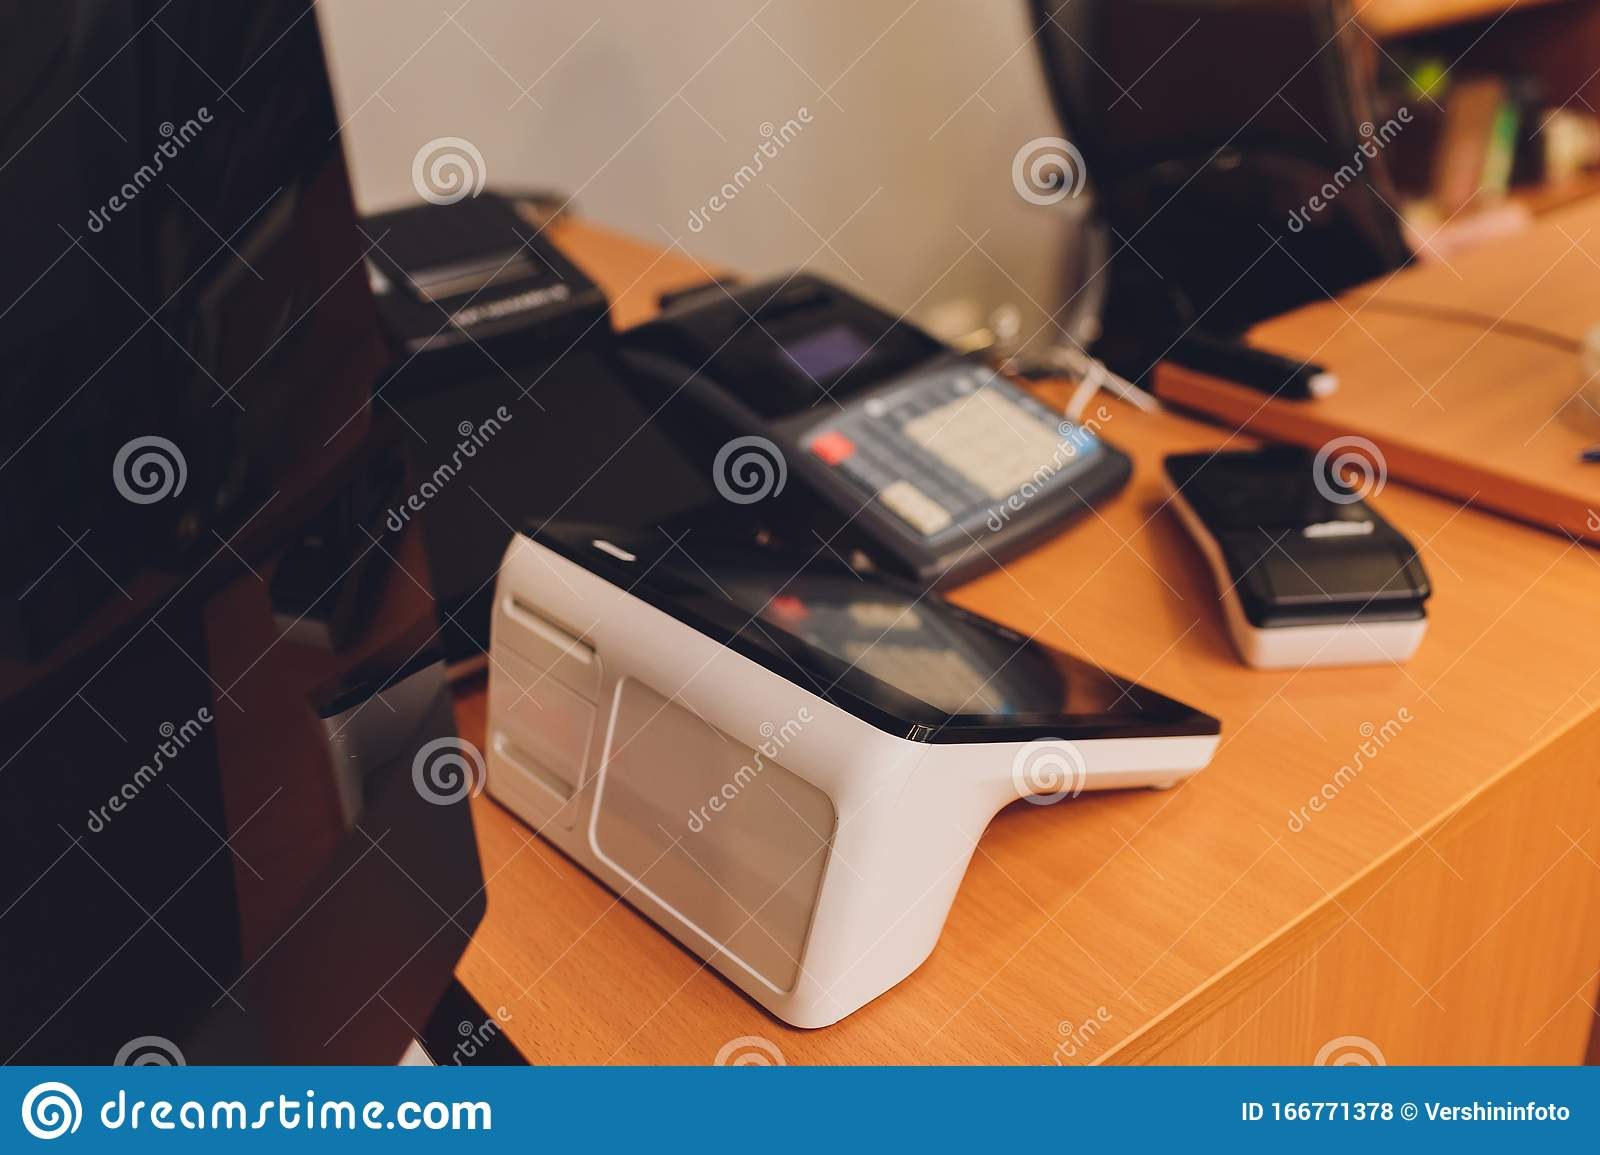 18/02/2021· end of day shift register close out procedures starting an inflatable business from www.inflatablestartup.com. Smart Terminal In Operation Online Ticket Office With A Terminal Electronic Cash Register Close Up Checkout Stock Photo Image Of Shop Sale 166771378